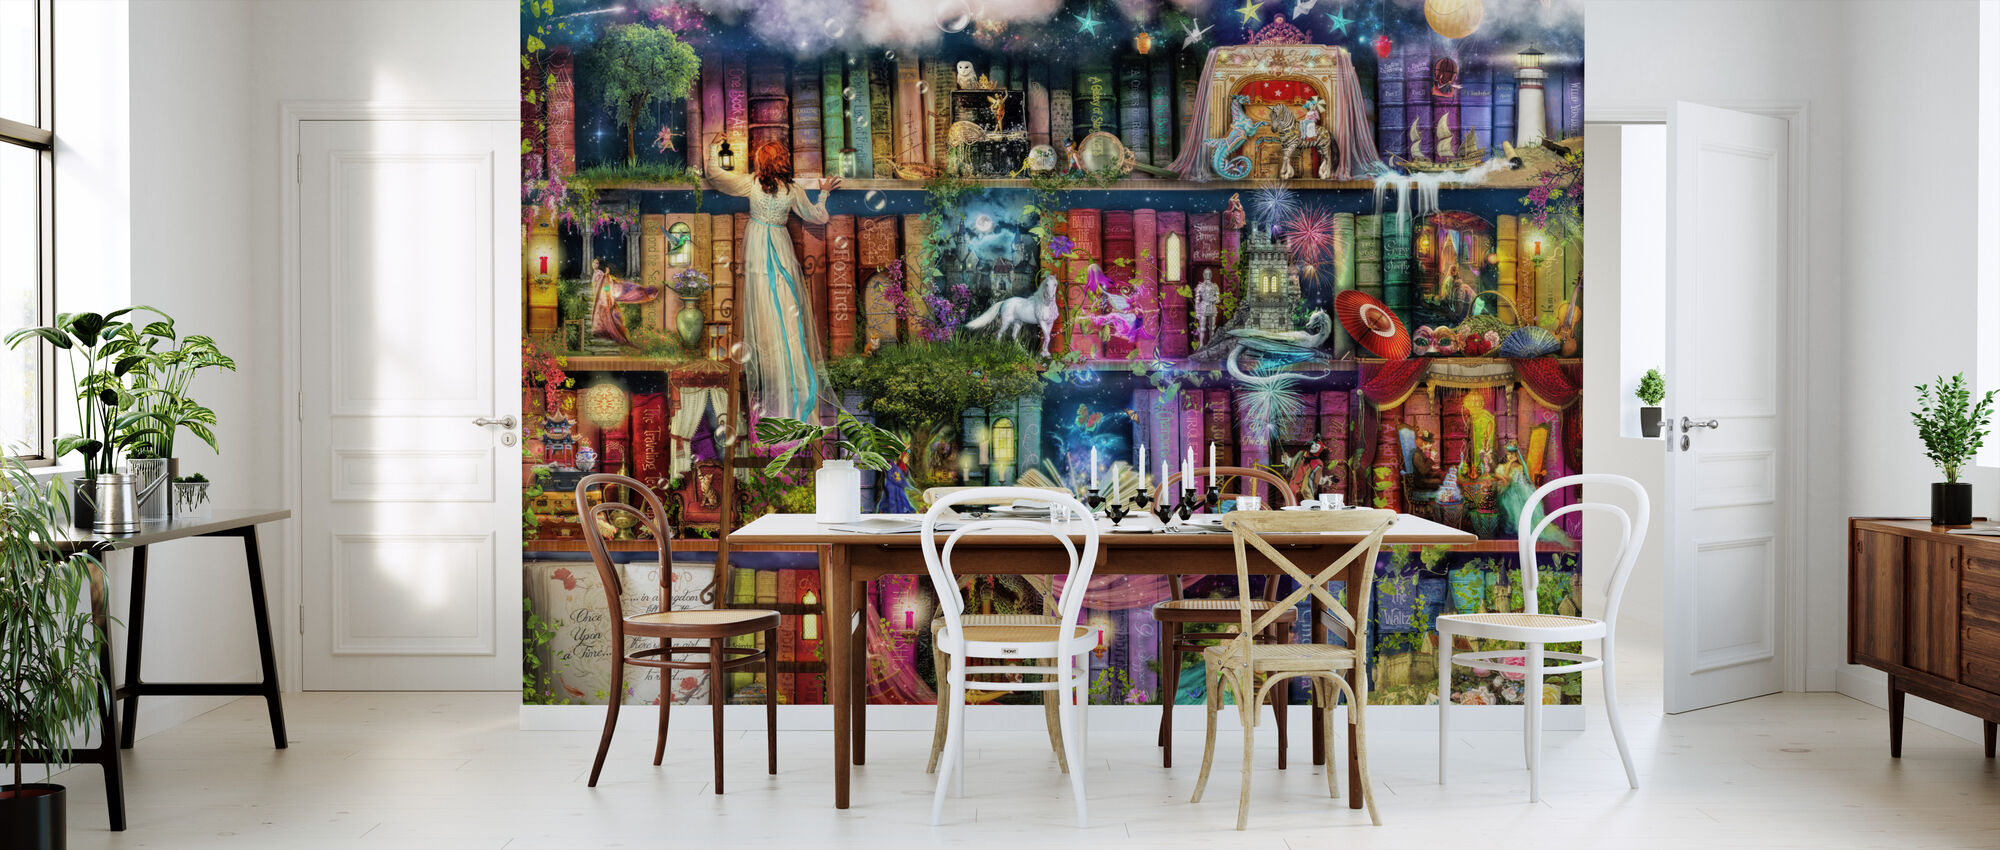 Treasure Hunt Book Shelf - Wallpaper - Kitchen